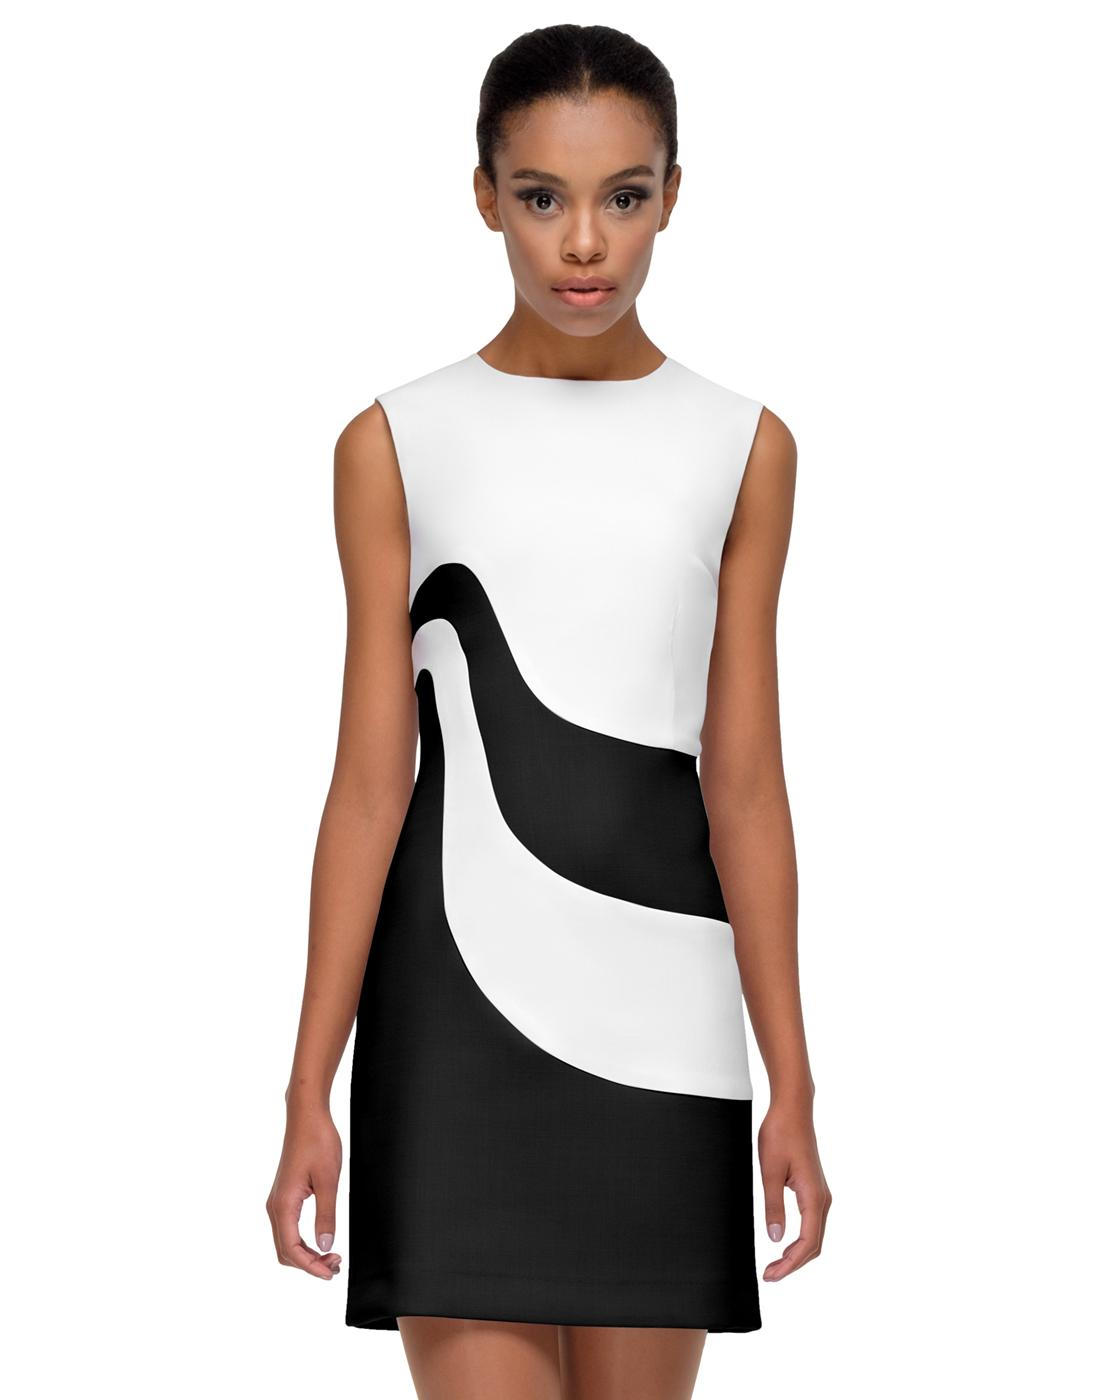 MARMALADE Retro 60s Mod Swoosh Dress in Black